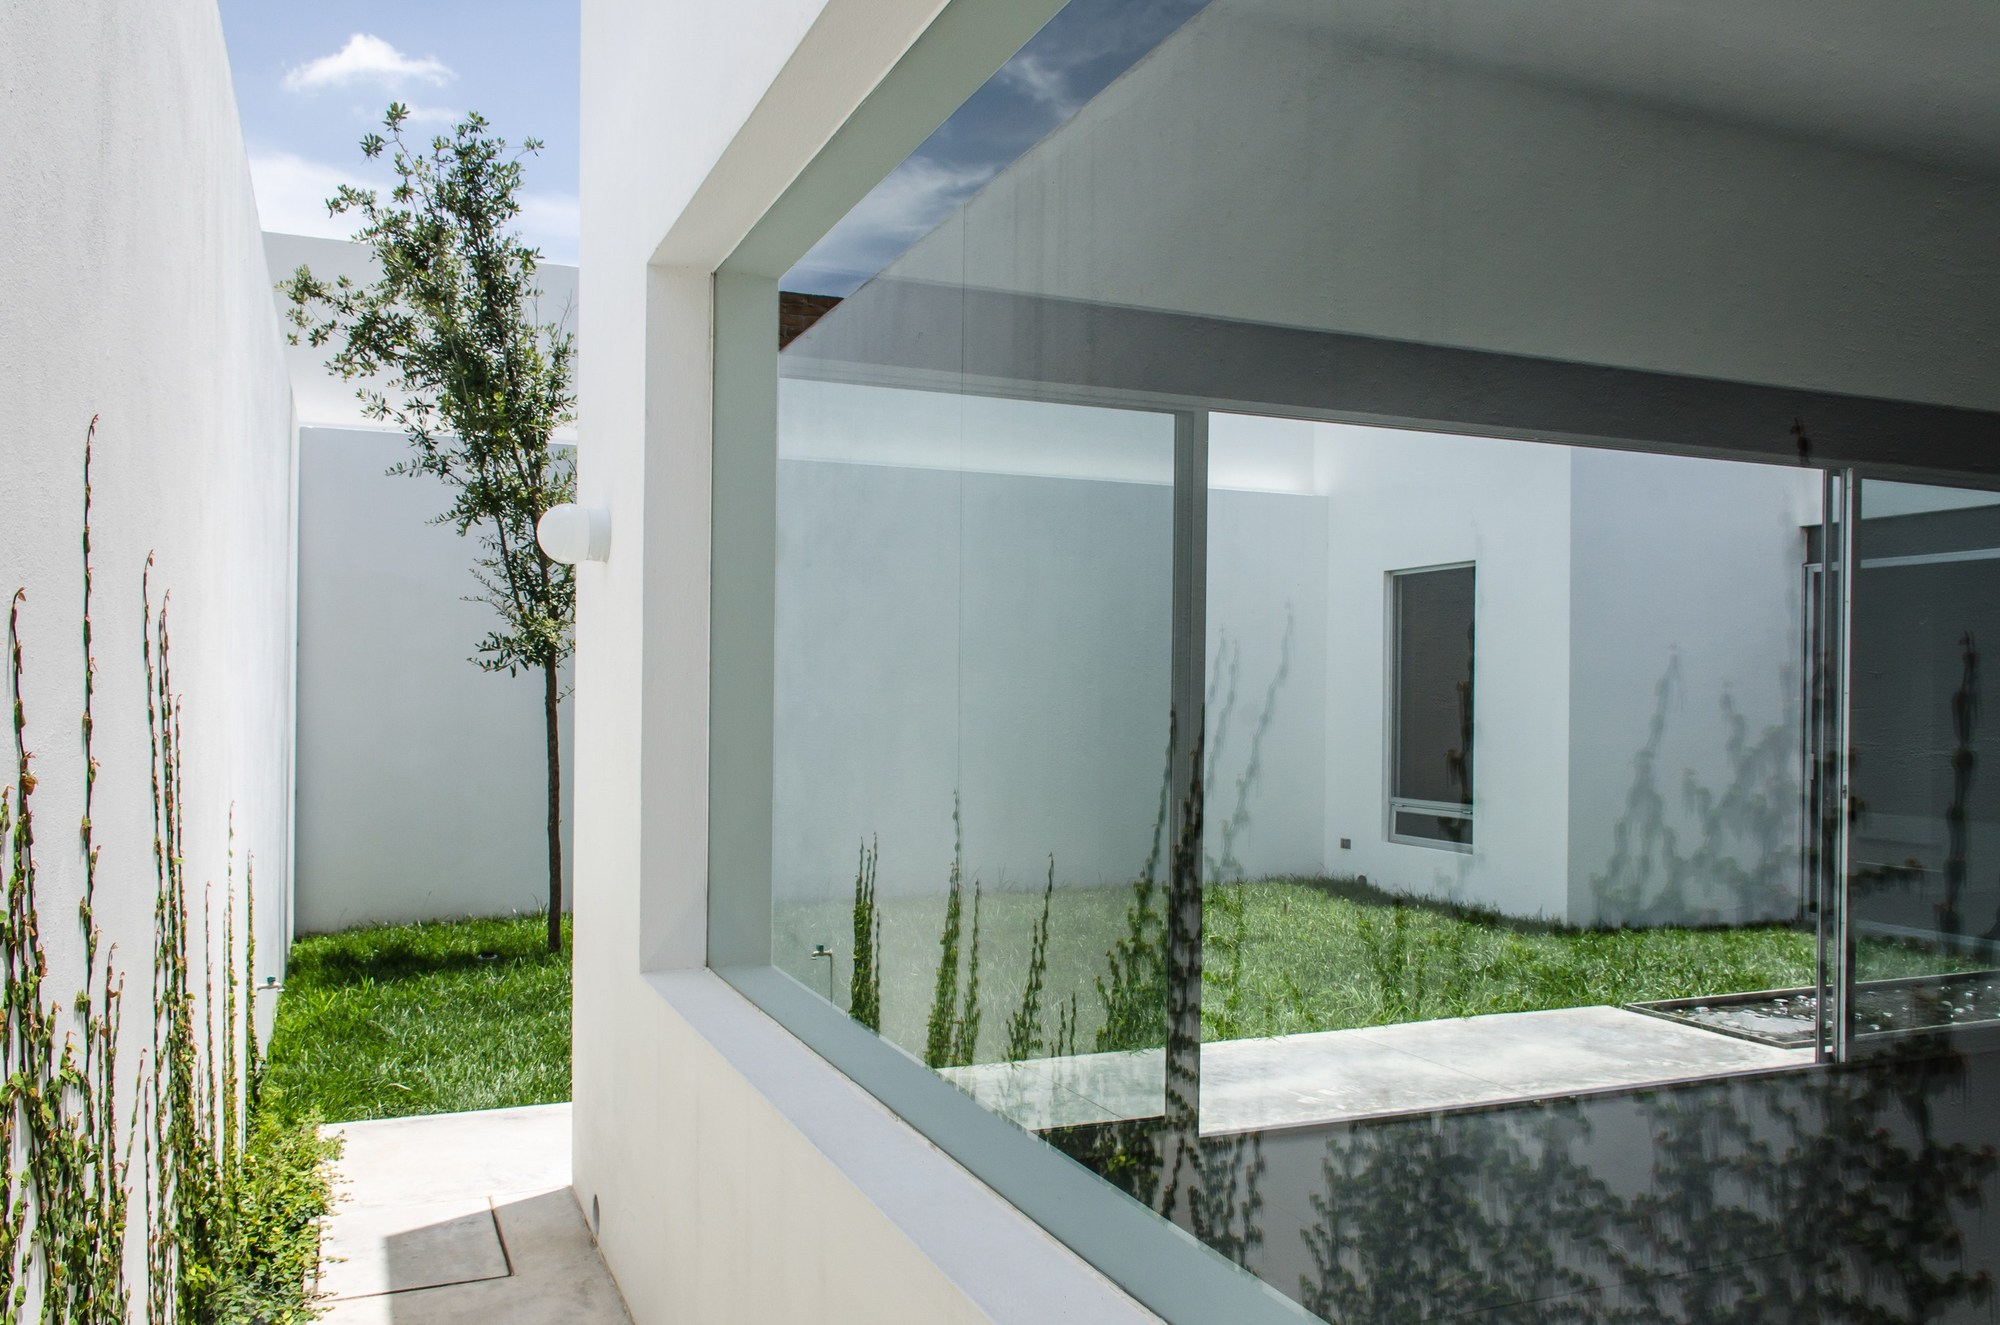 Gallery of t02 adi arquitectura y dise o interior 12 for Adi arquitectura y diseno interior